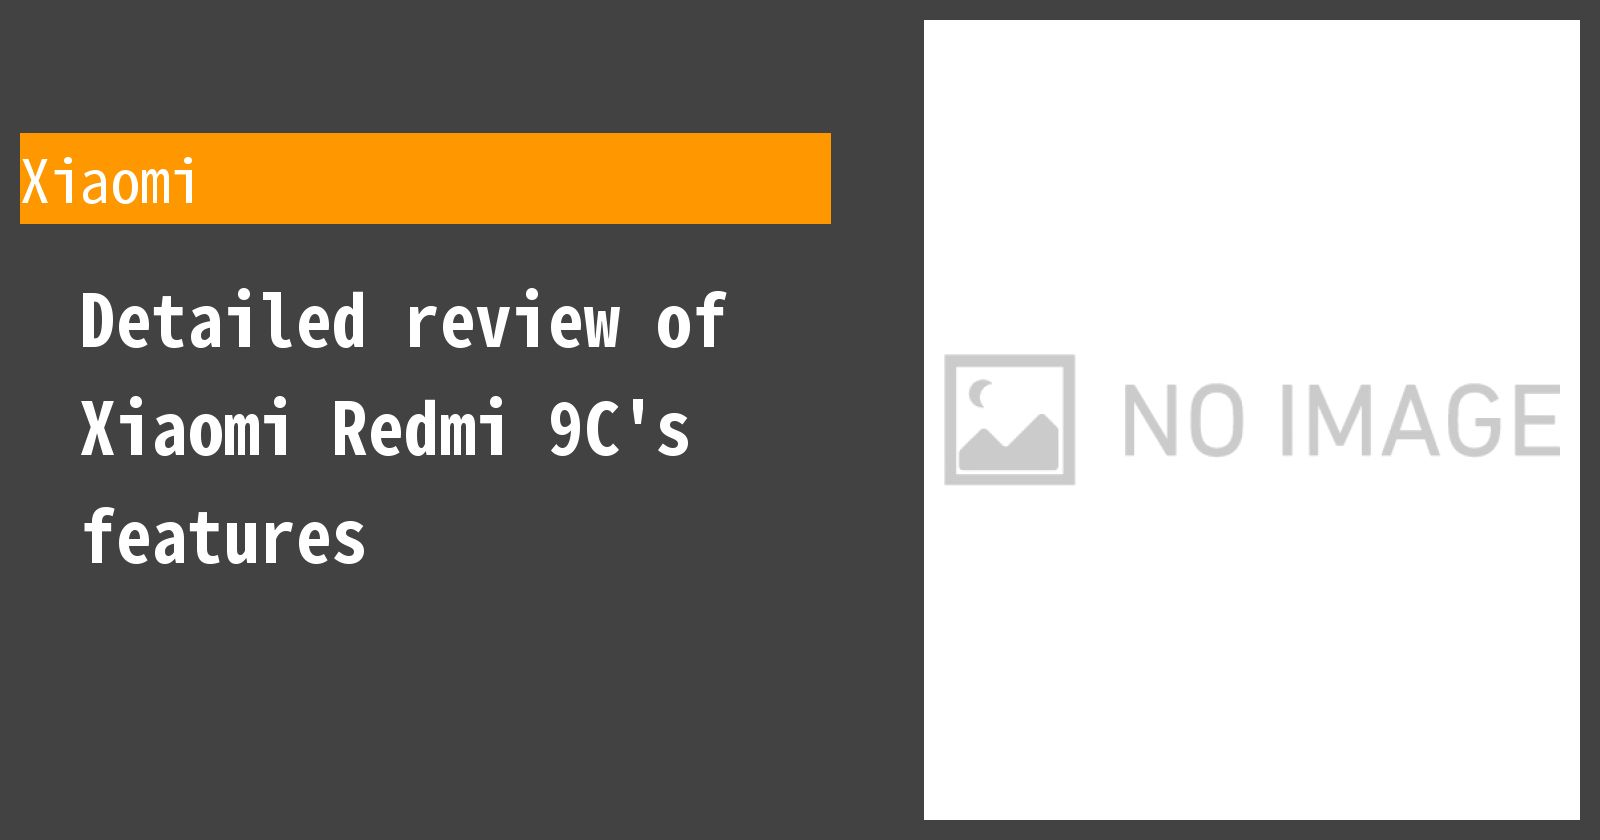 Detailed review of Xiaomi Redmi 9C's features